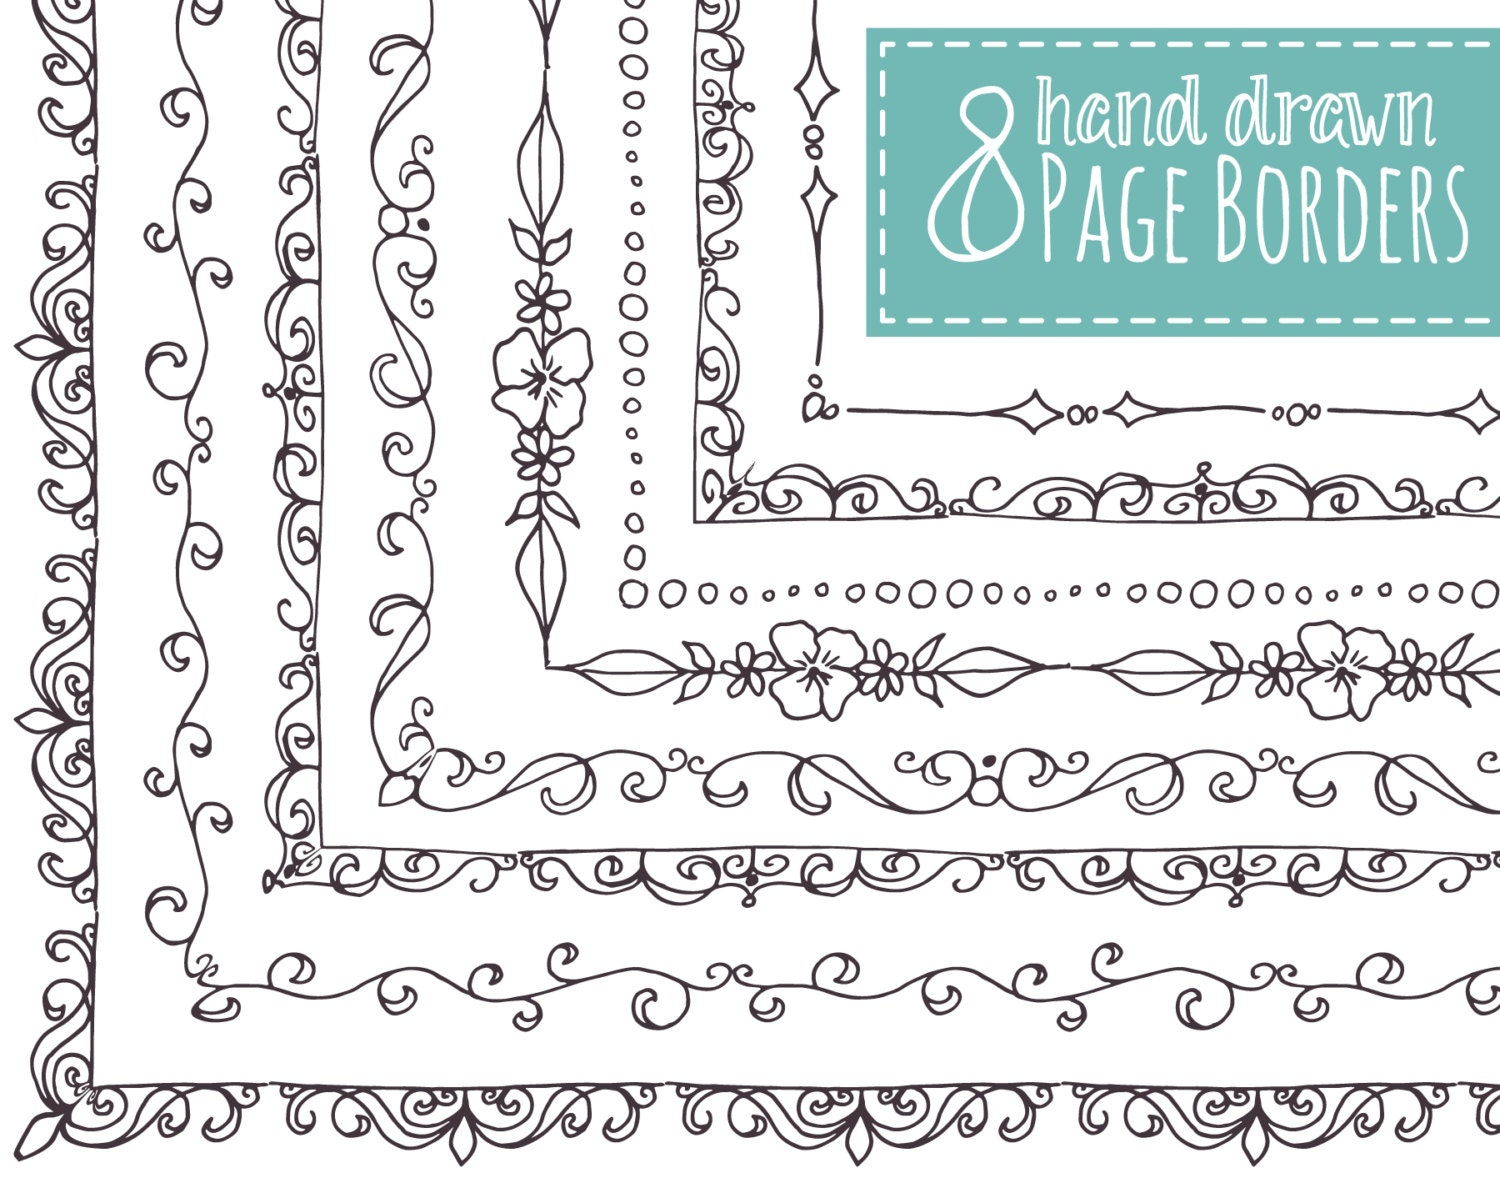 Clip art 8 page borders hand drawn frames doodle for Page decoration ideas